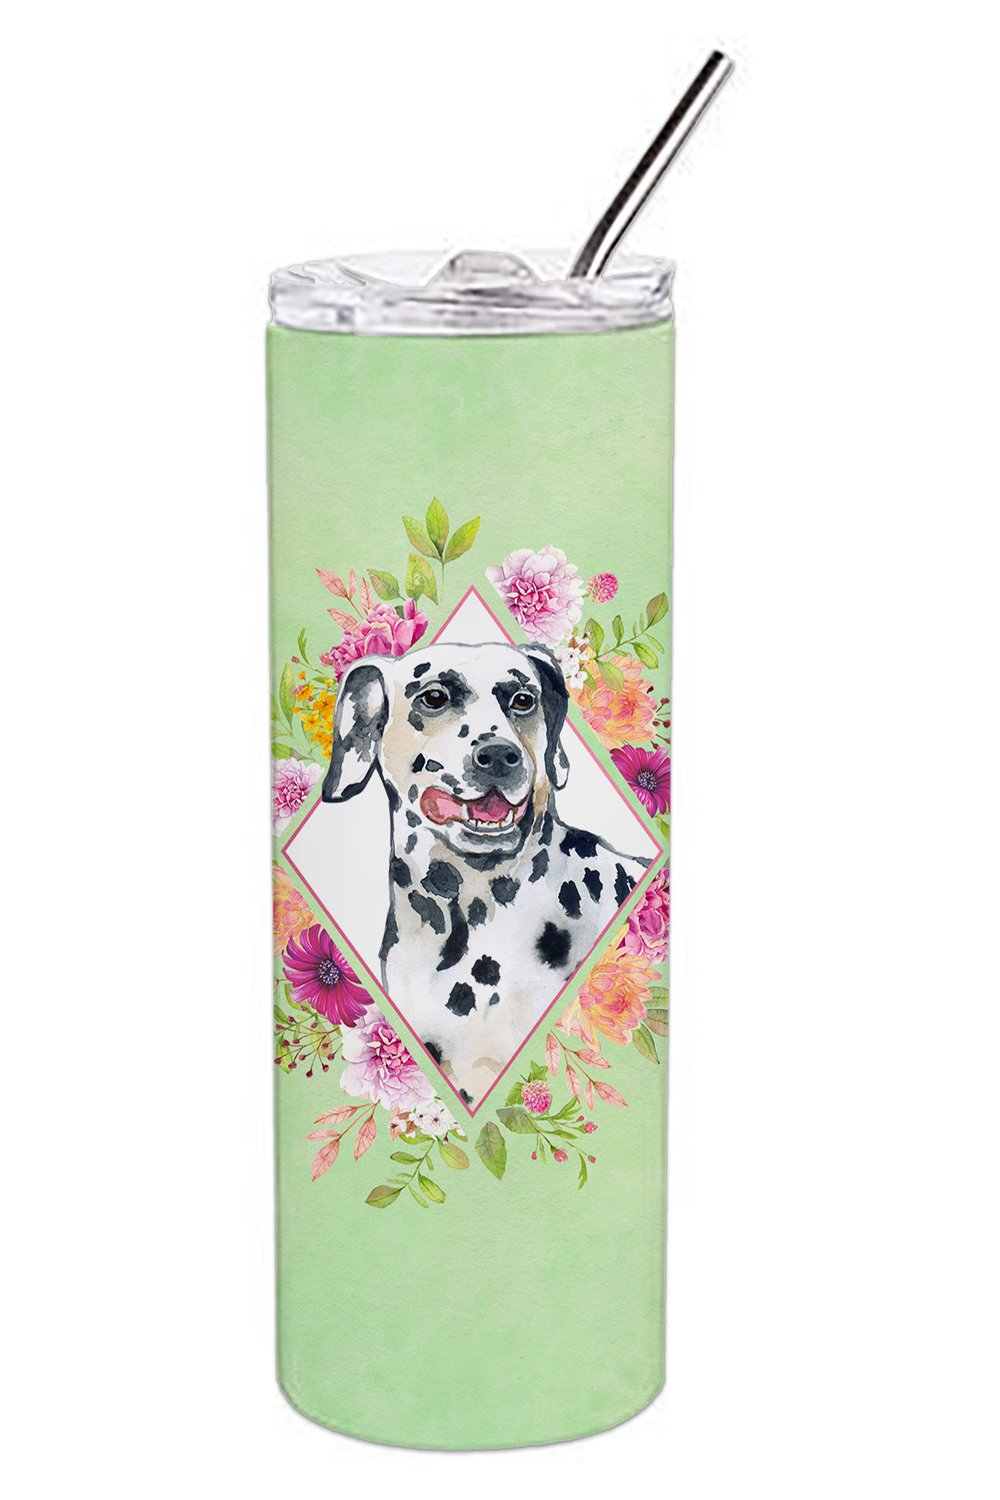 Dalmatian Green Flowers Double Walled Stainless Steel 20 oz Skinny Tumbler CK4297TBL20 by Caroline's Treasures